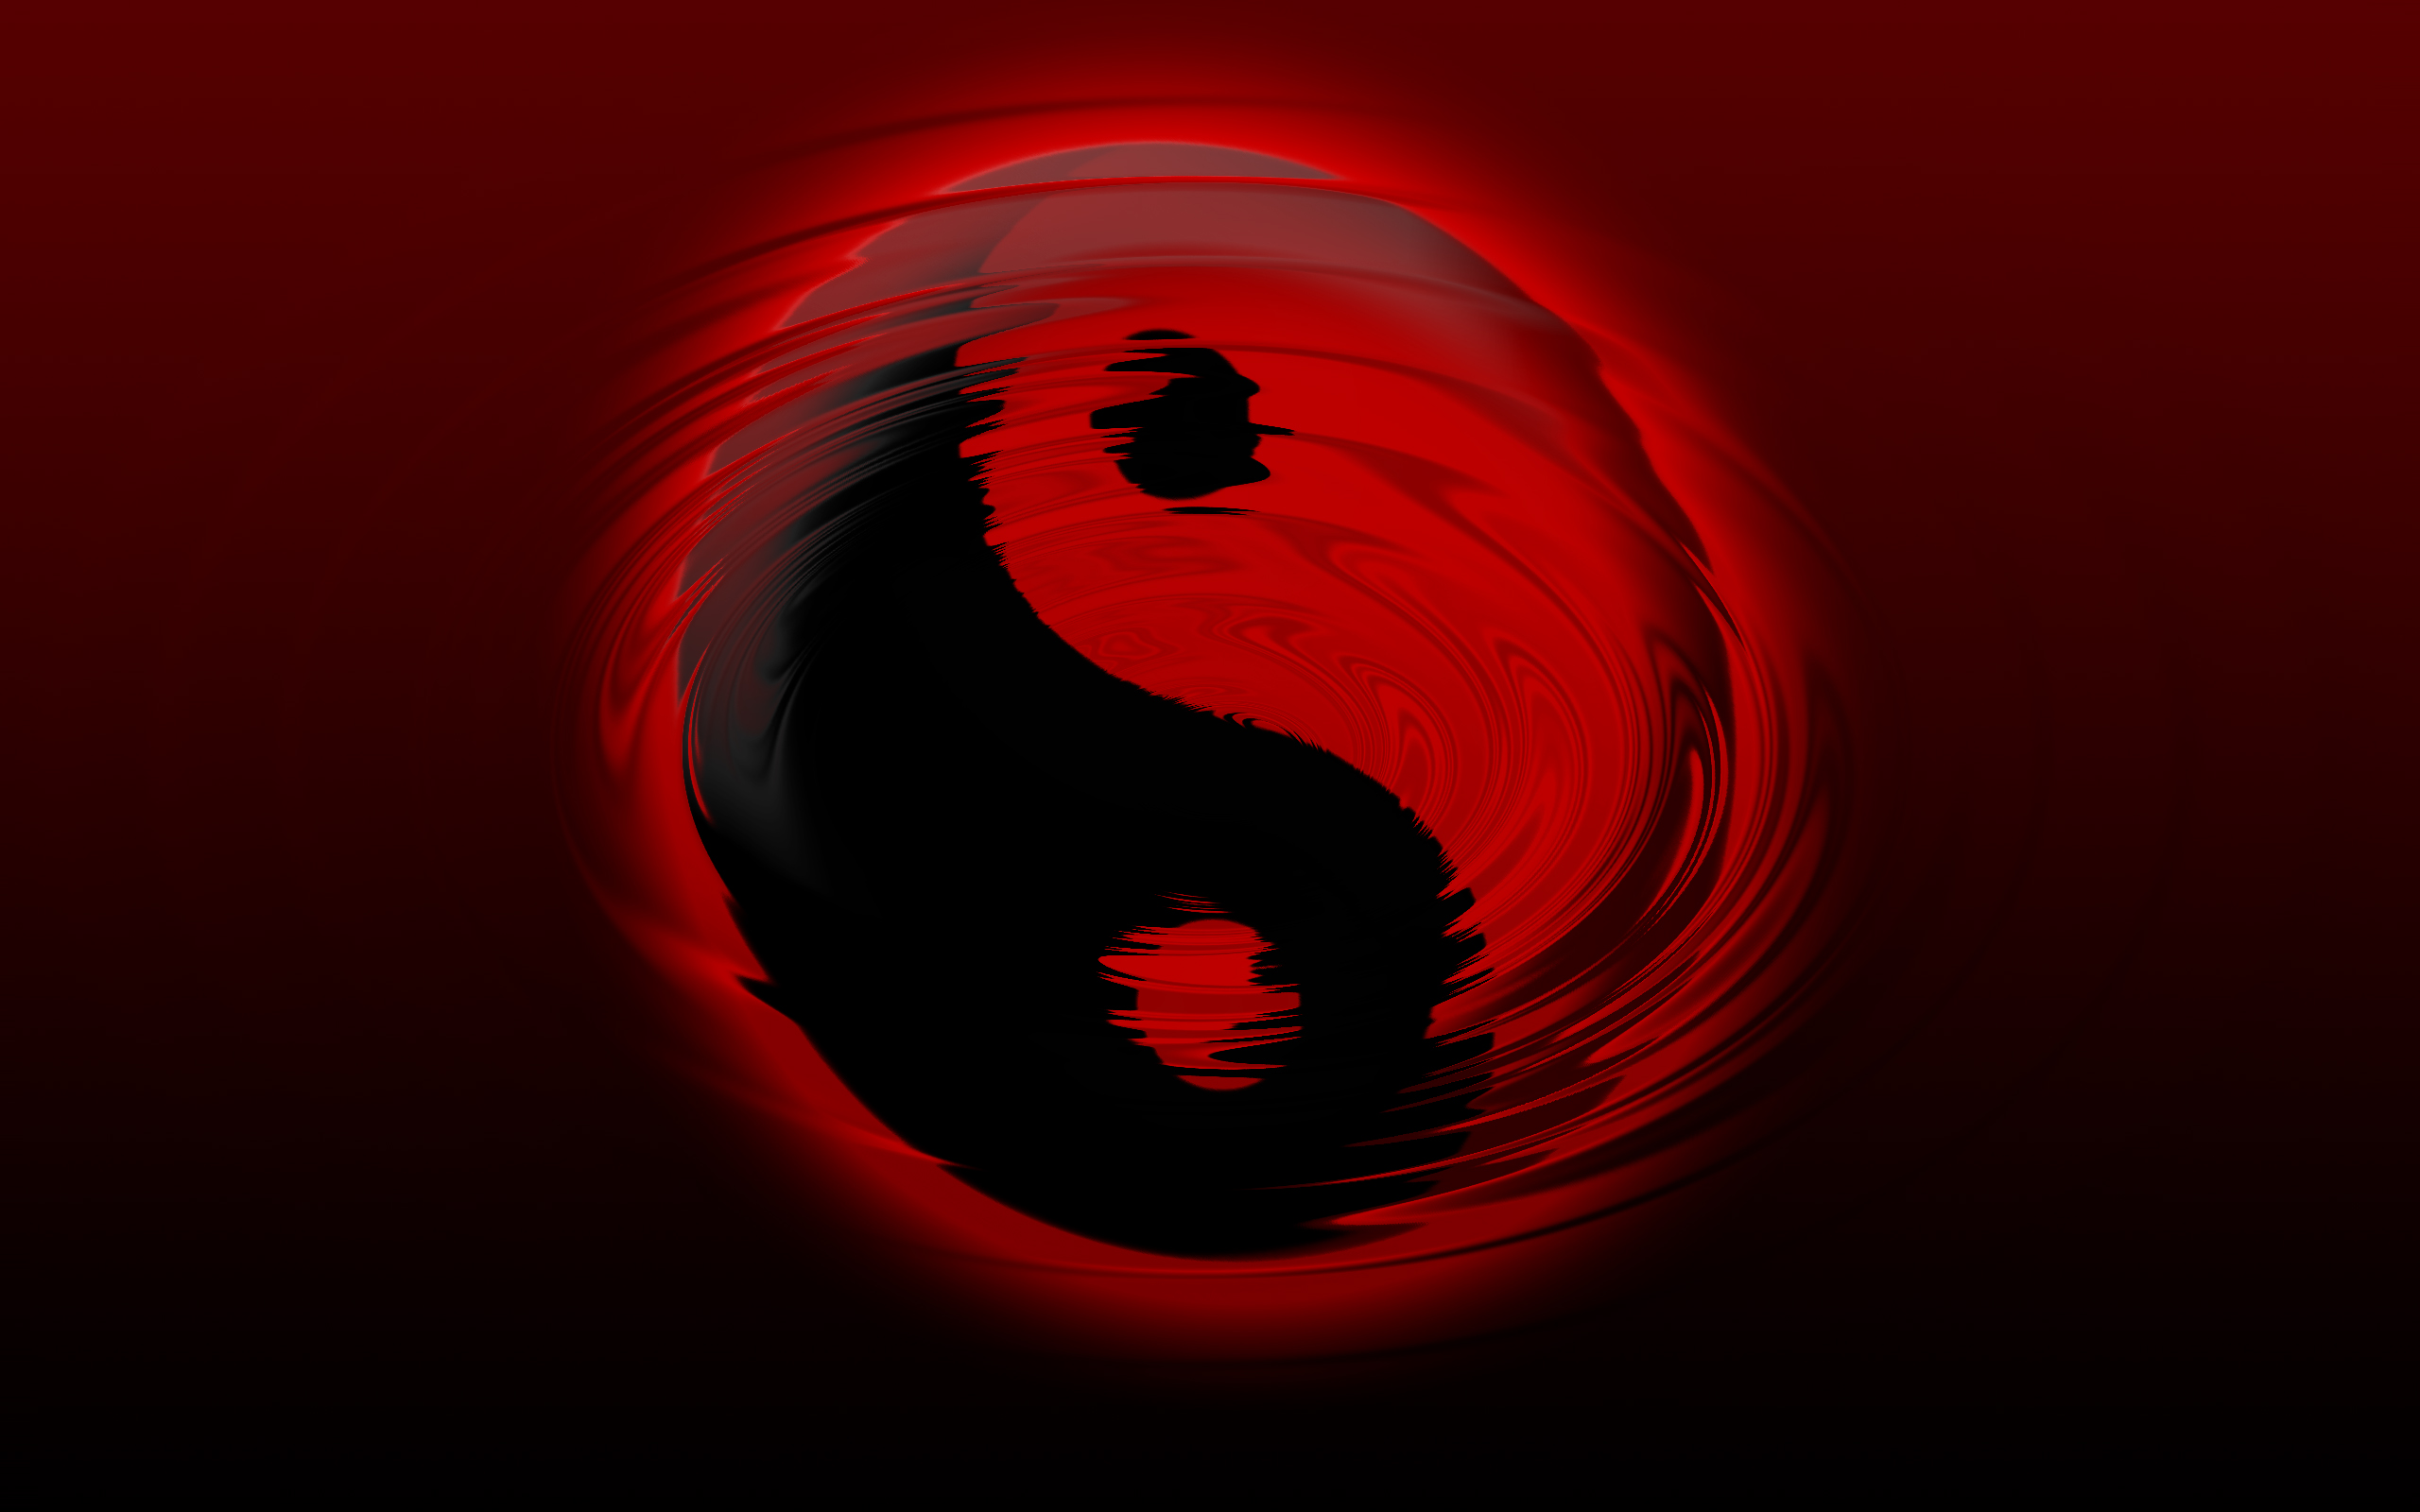 Cool Wallpapers Red And Black